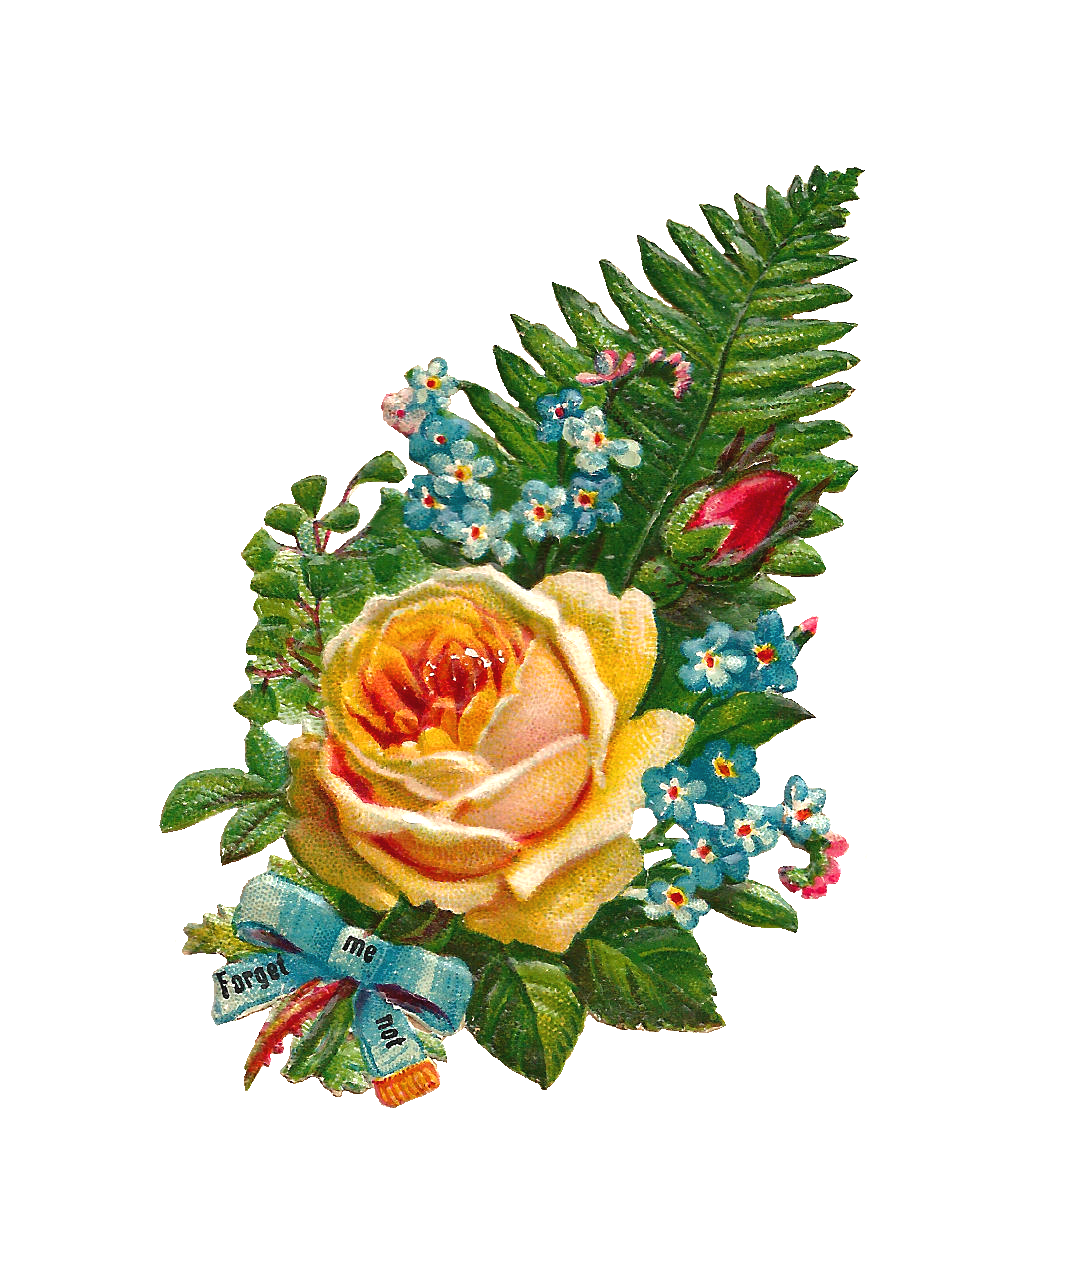 Antique images free digital. Clipart roses yellow rose